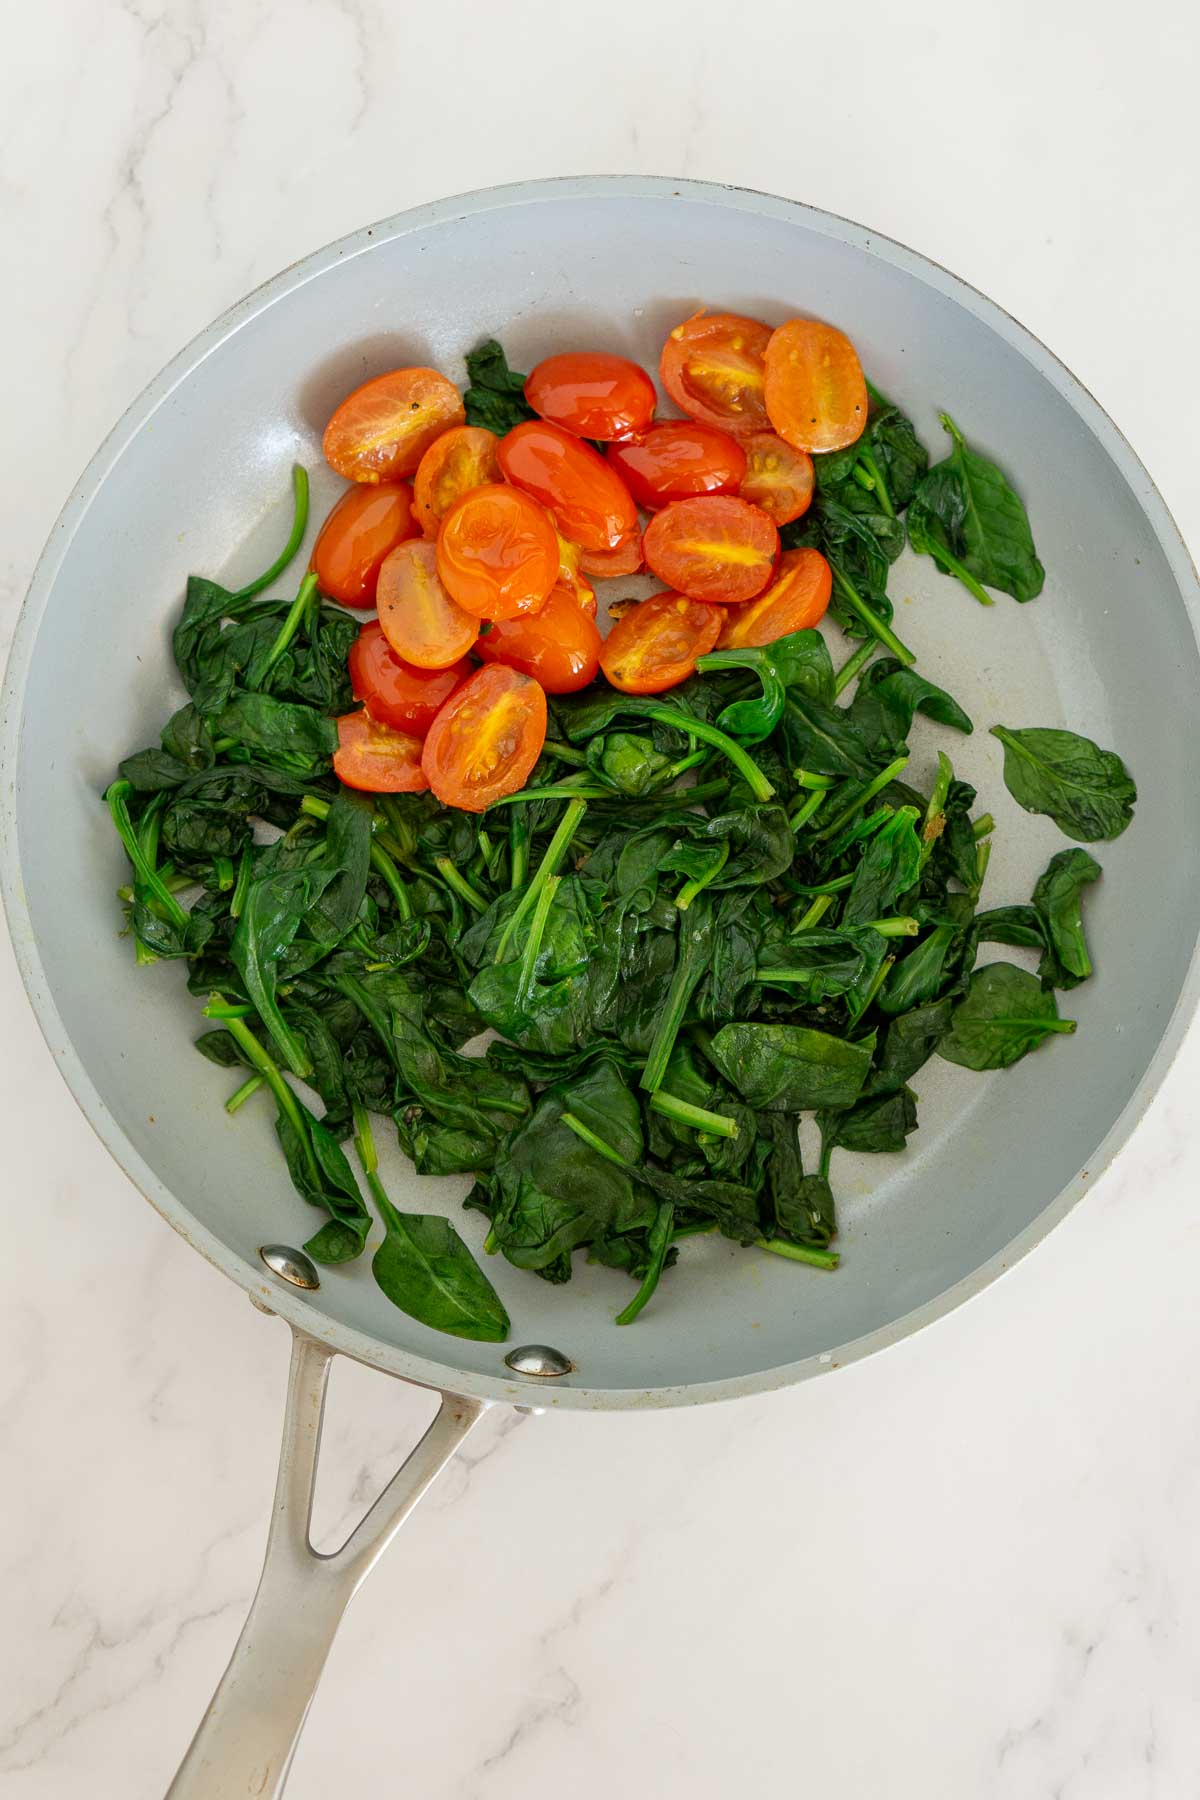 Sauteed spinach and grape tomatoes in a skillet.